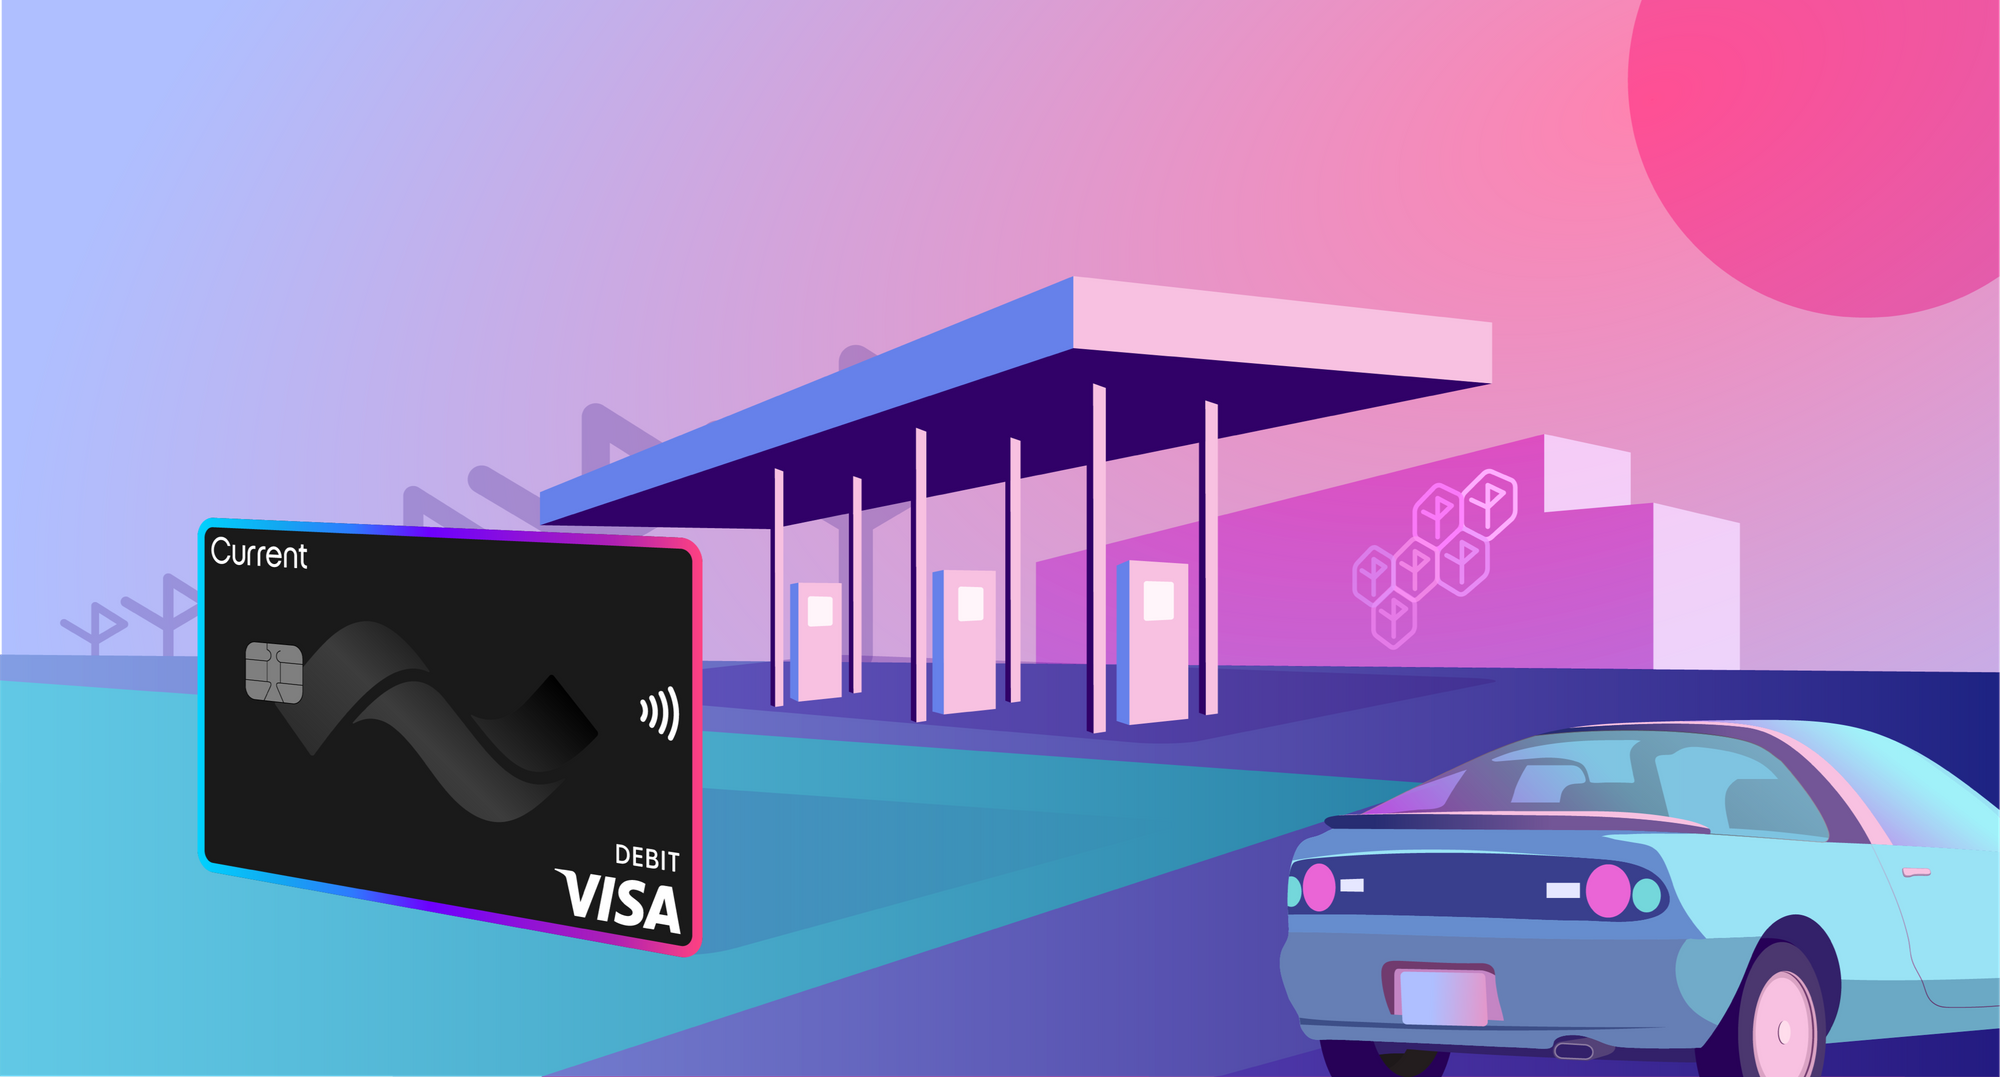 paying-for-gas-with-a-credit-card-vs-debit-card